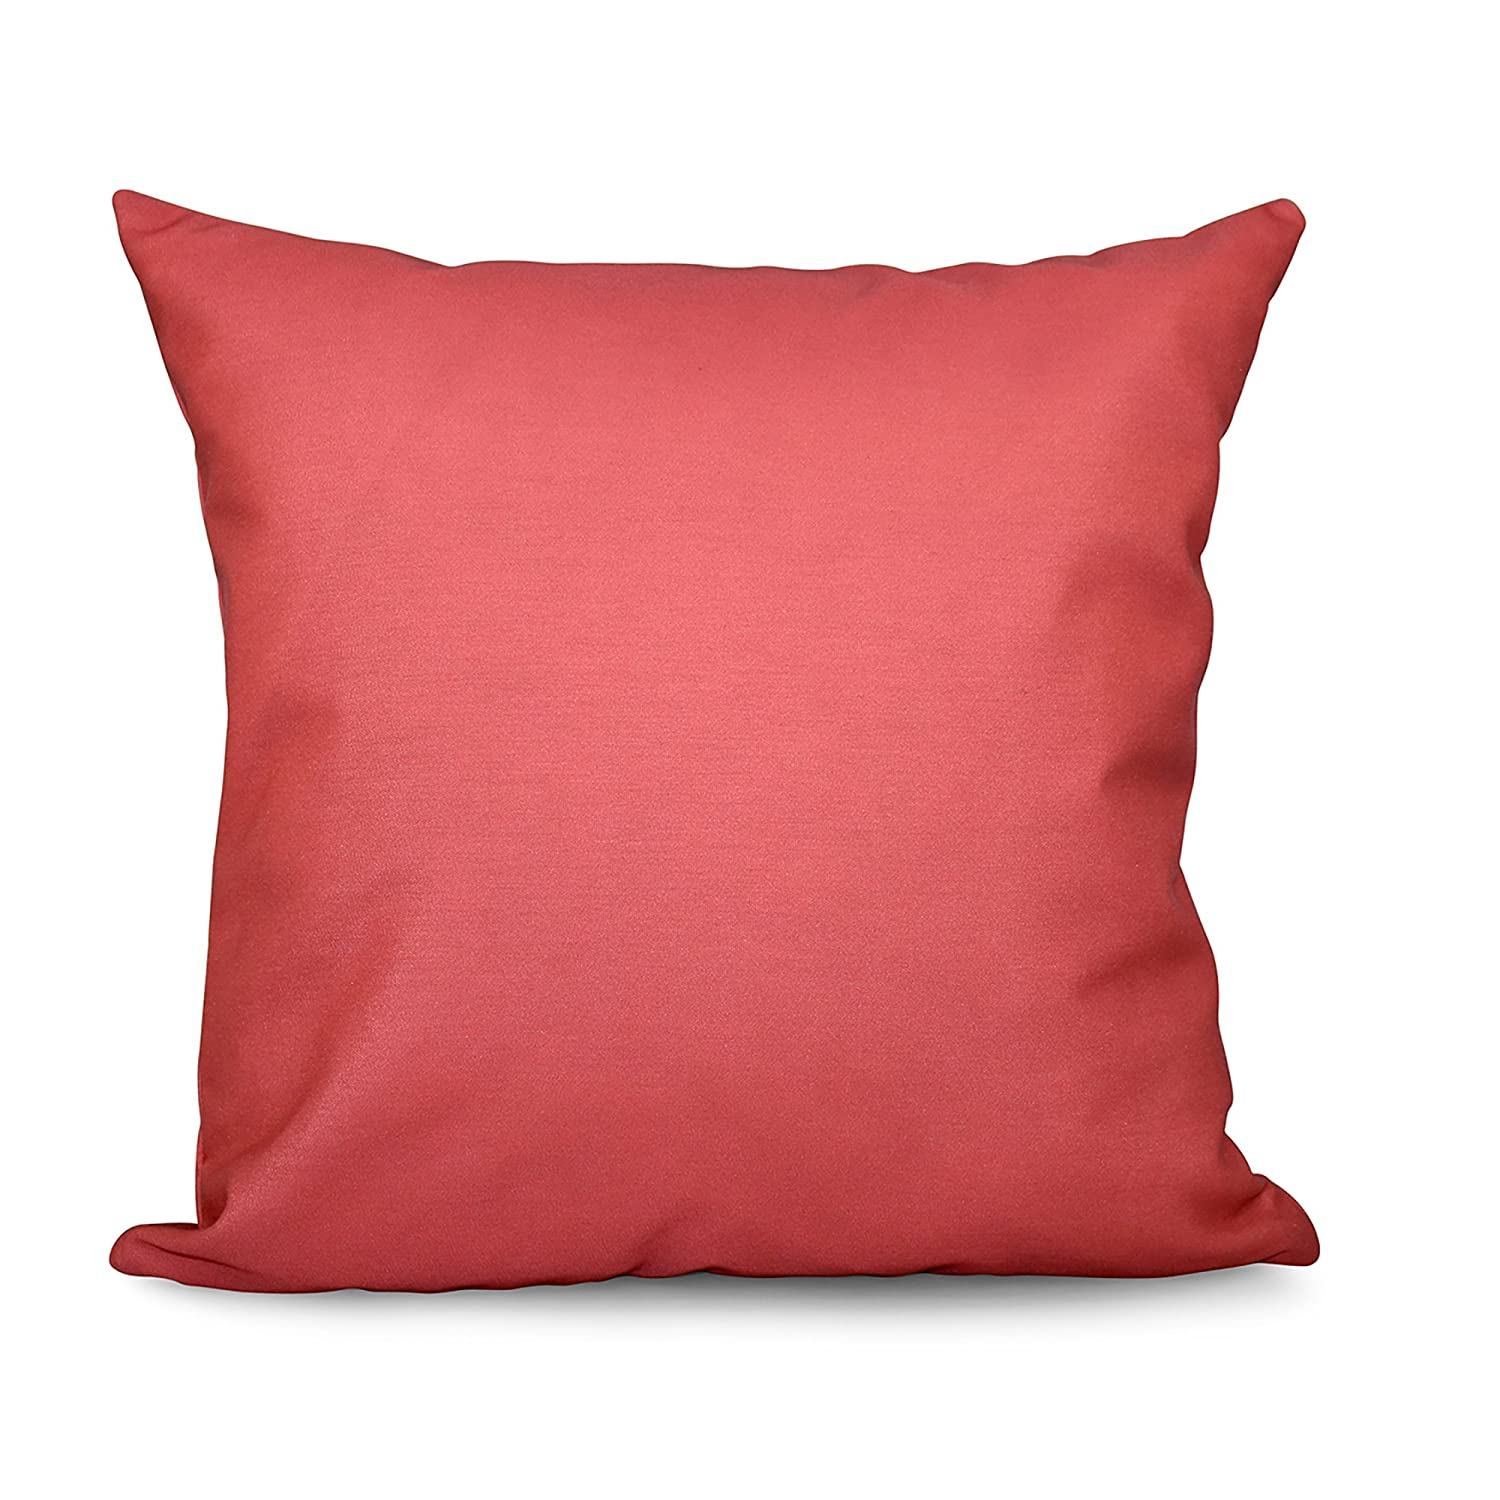 E by design PSO-N50-Coral-20 PSO-N50-Coral-20 Solid Decorative Pillow, Coral,Coral